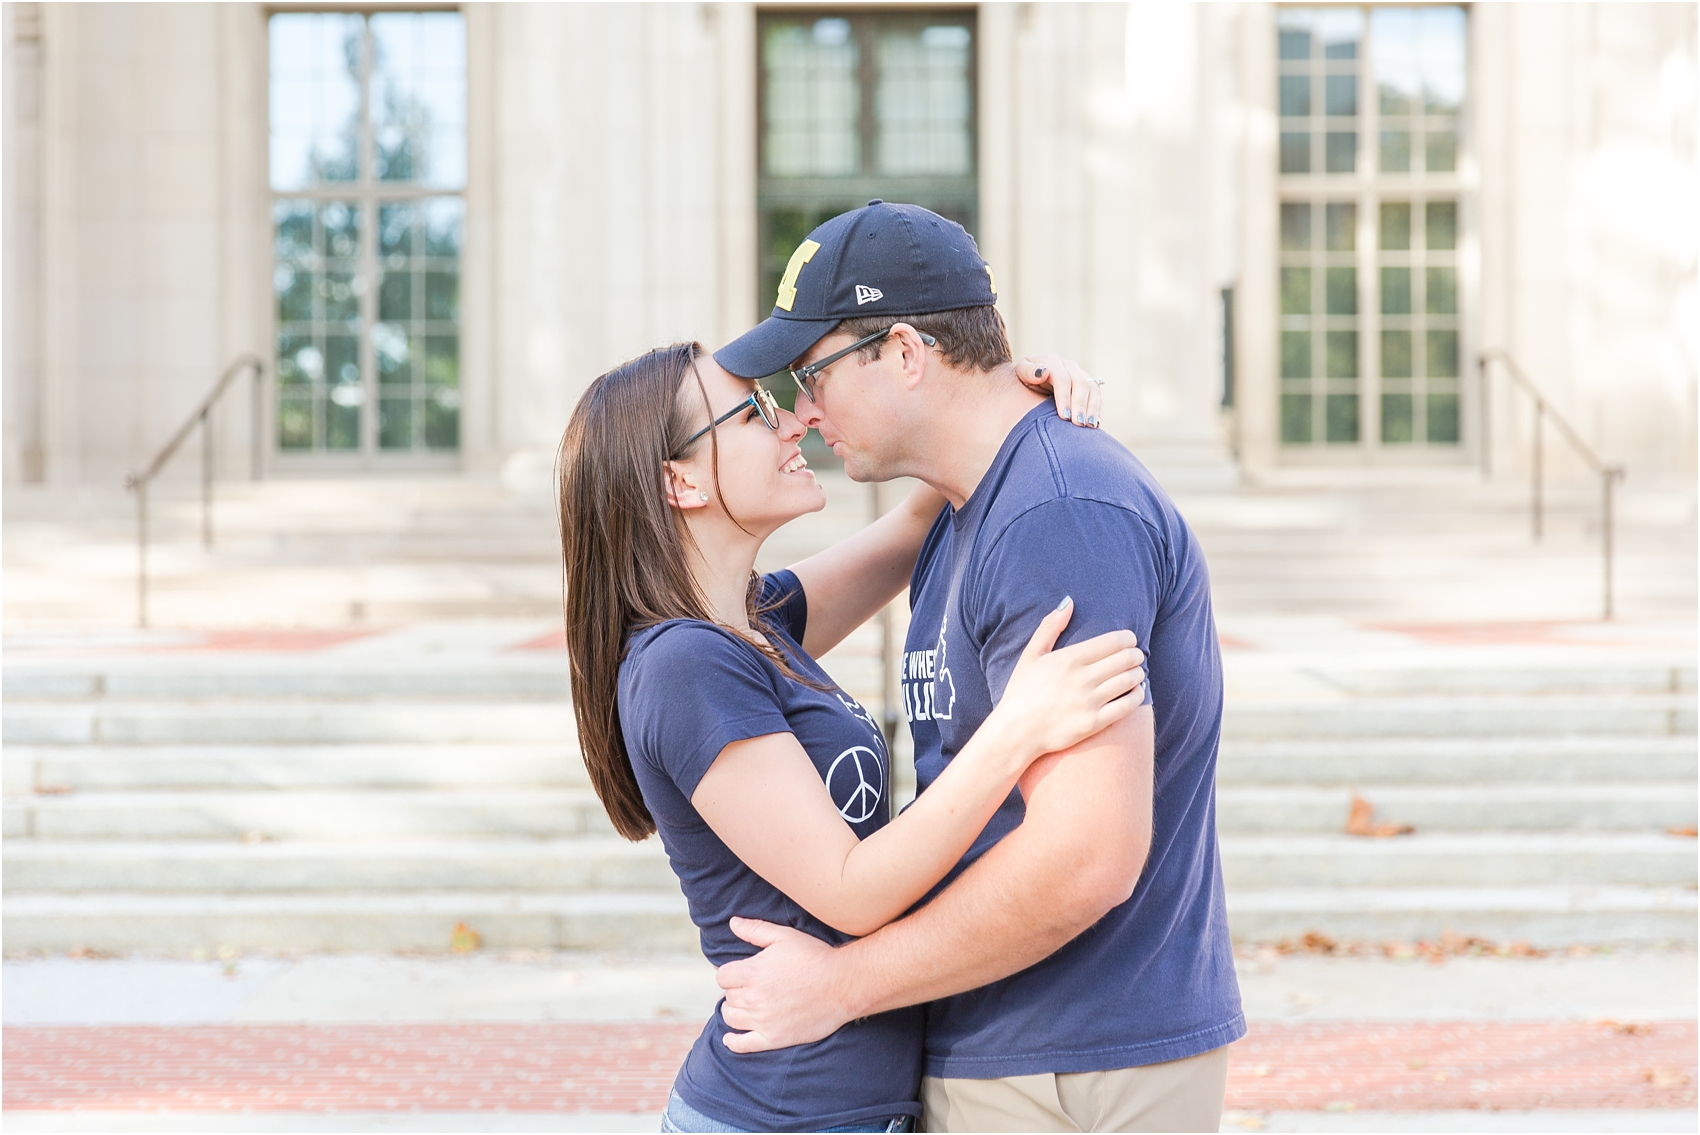 classic-fall-engagement-photos-at-the-university-of-michigan-in-ann-arbor-mi-by-courtney-carolyn-photography_0017.jpg